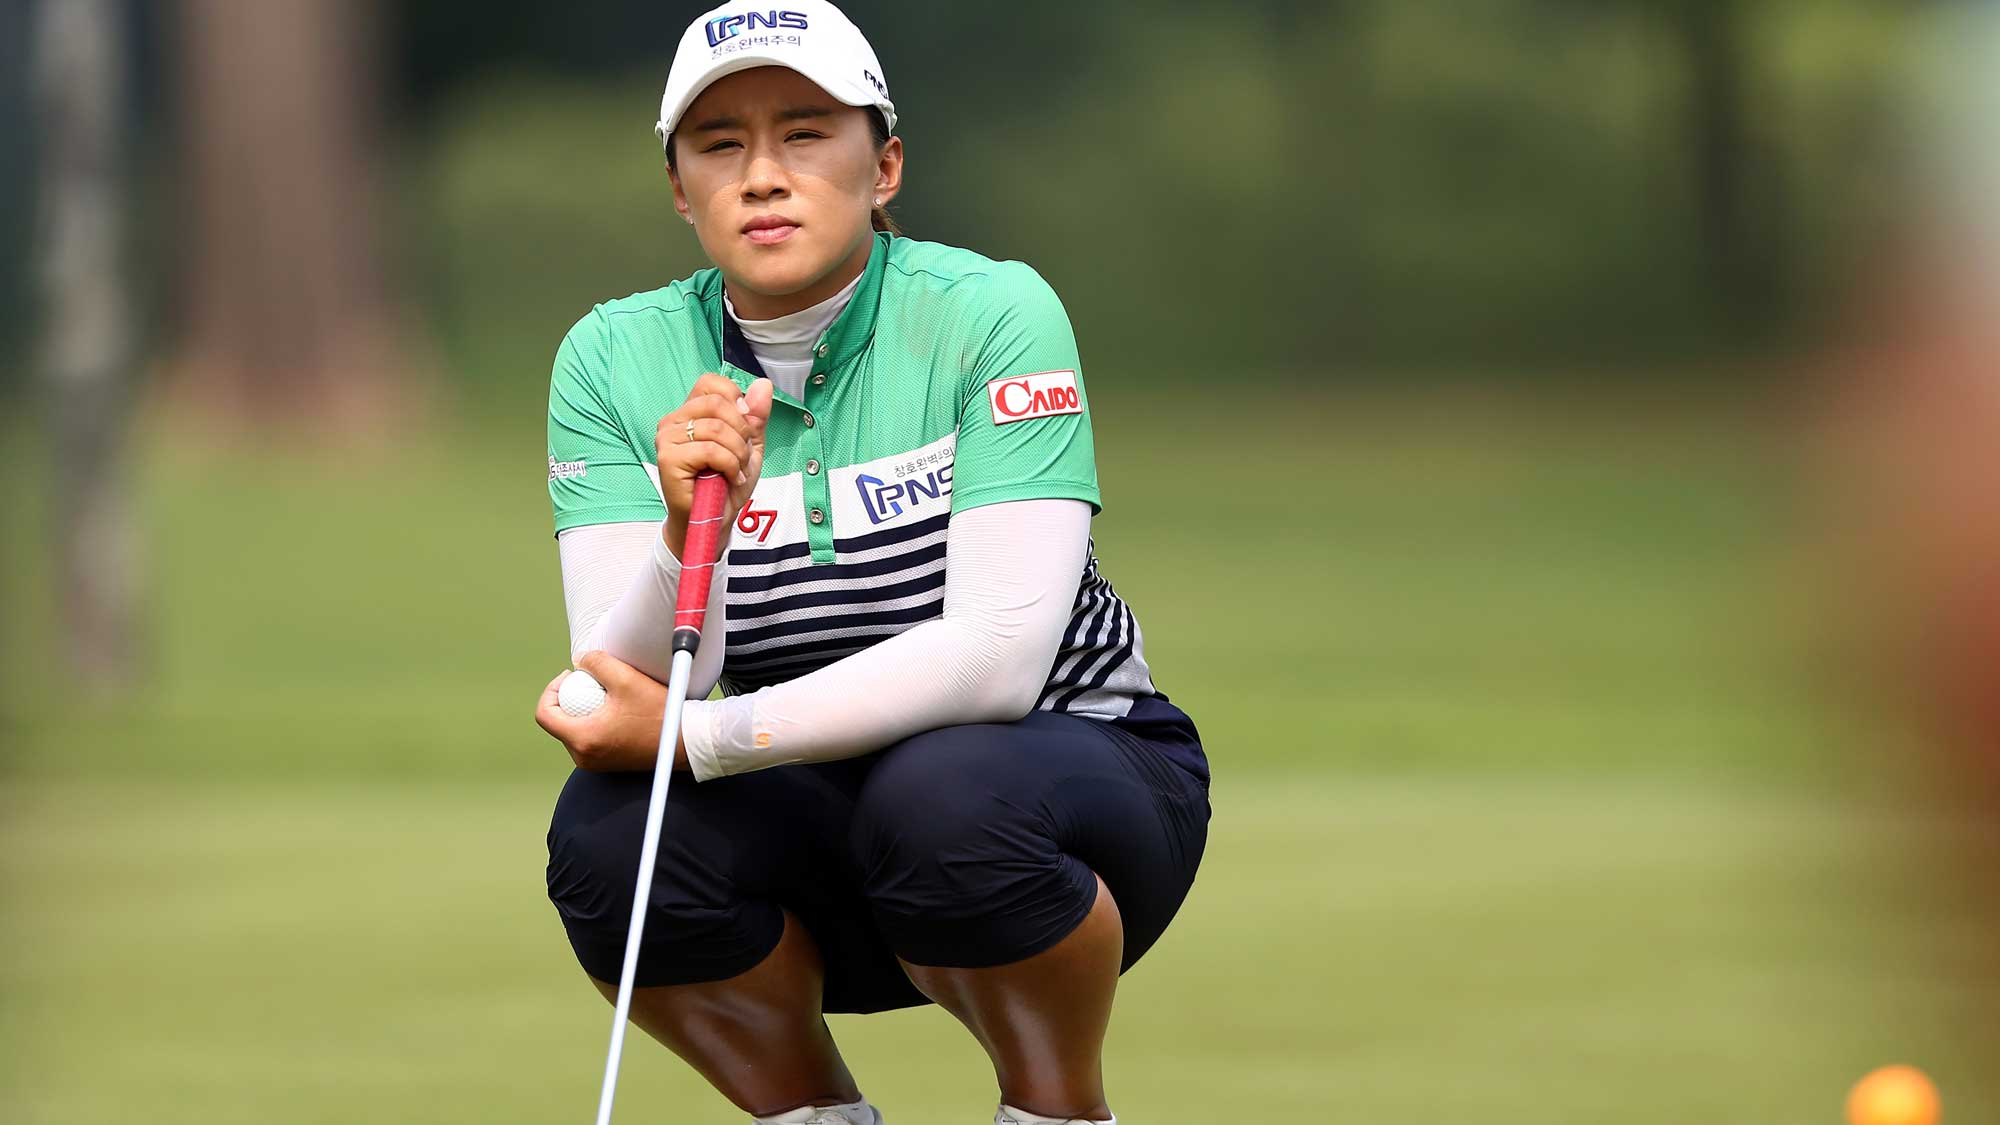 Amy Yang of South Korea waits for her turn to putt on the 3rd hole during round three of the Sime Darby LPGA Tour at Kuala Lumpur Golf & Country Club